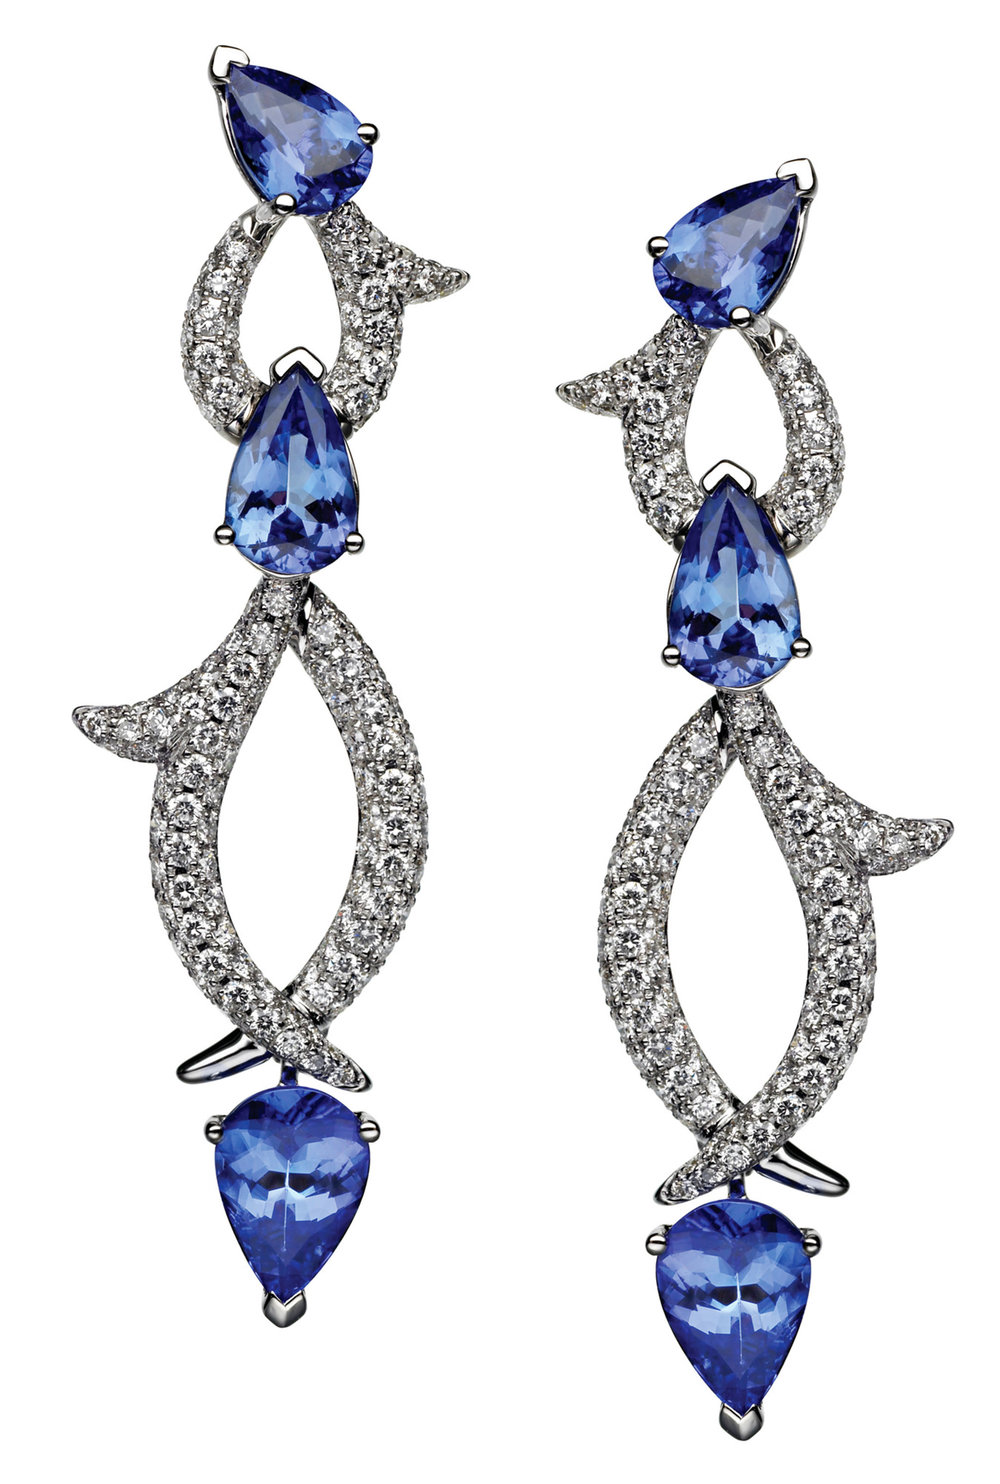 3.Earrings with Sapphires & Diamonds in 18k White Gold by Palladio Jewellers Price upon request,  palladiocanada.com